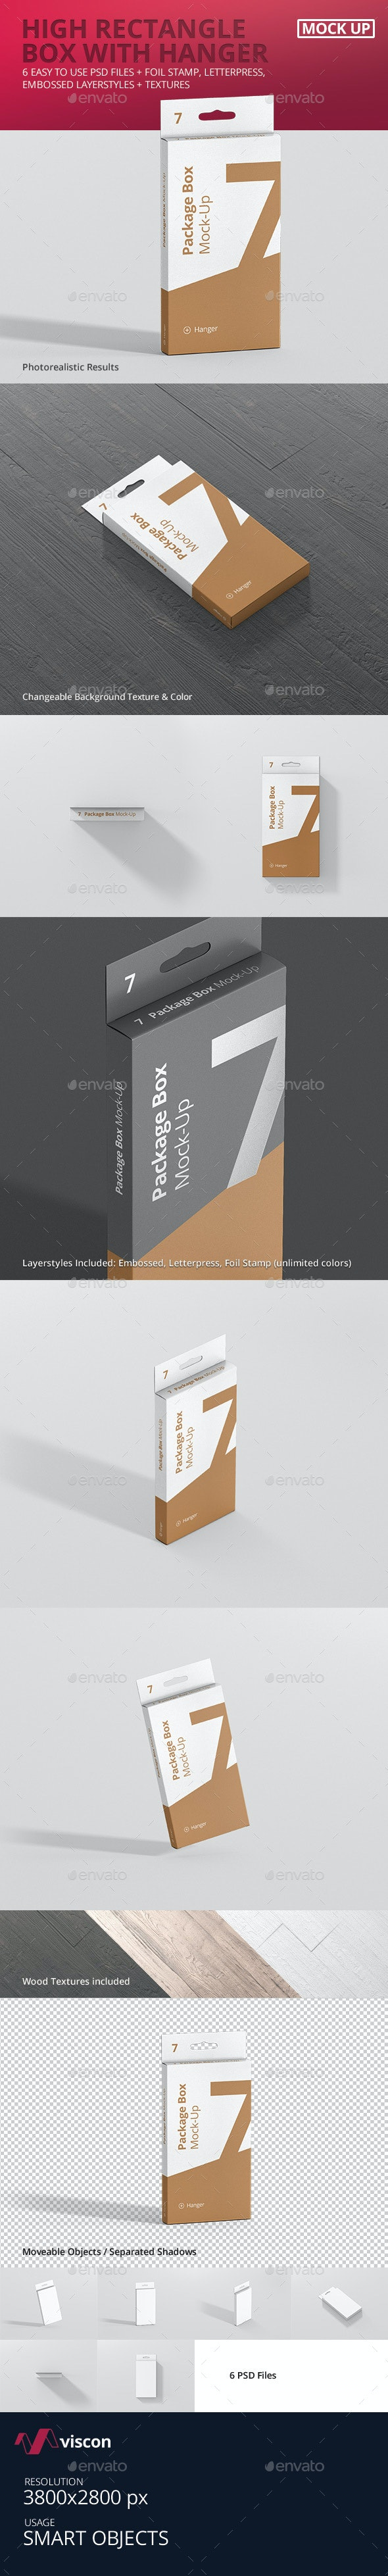 Package Box Mock-Up - High Rectangle with Hanger - Miscellaneous Packaging